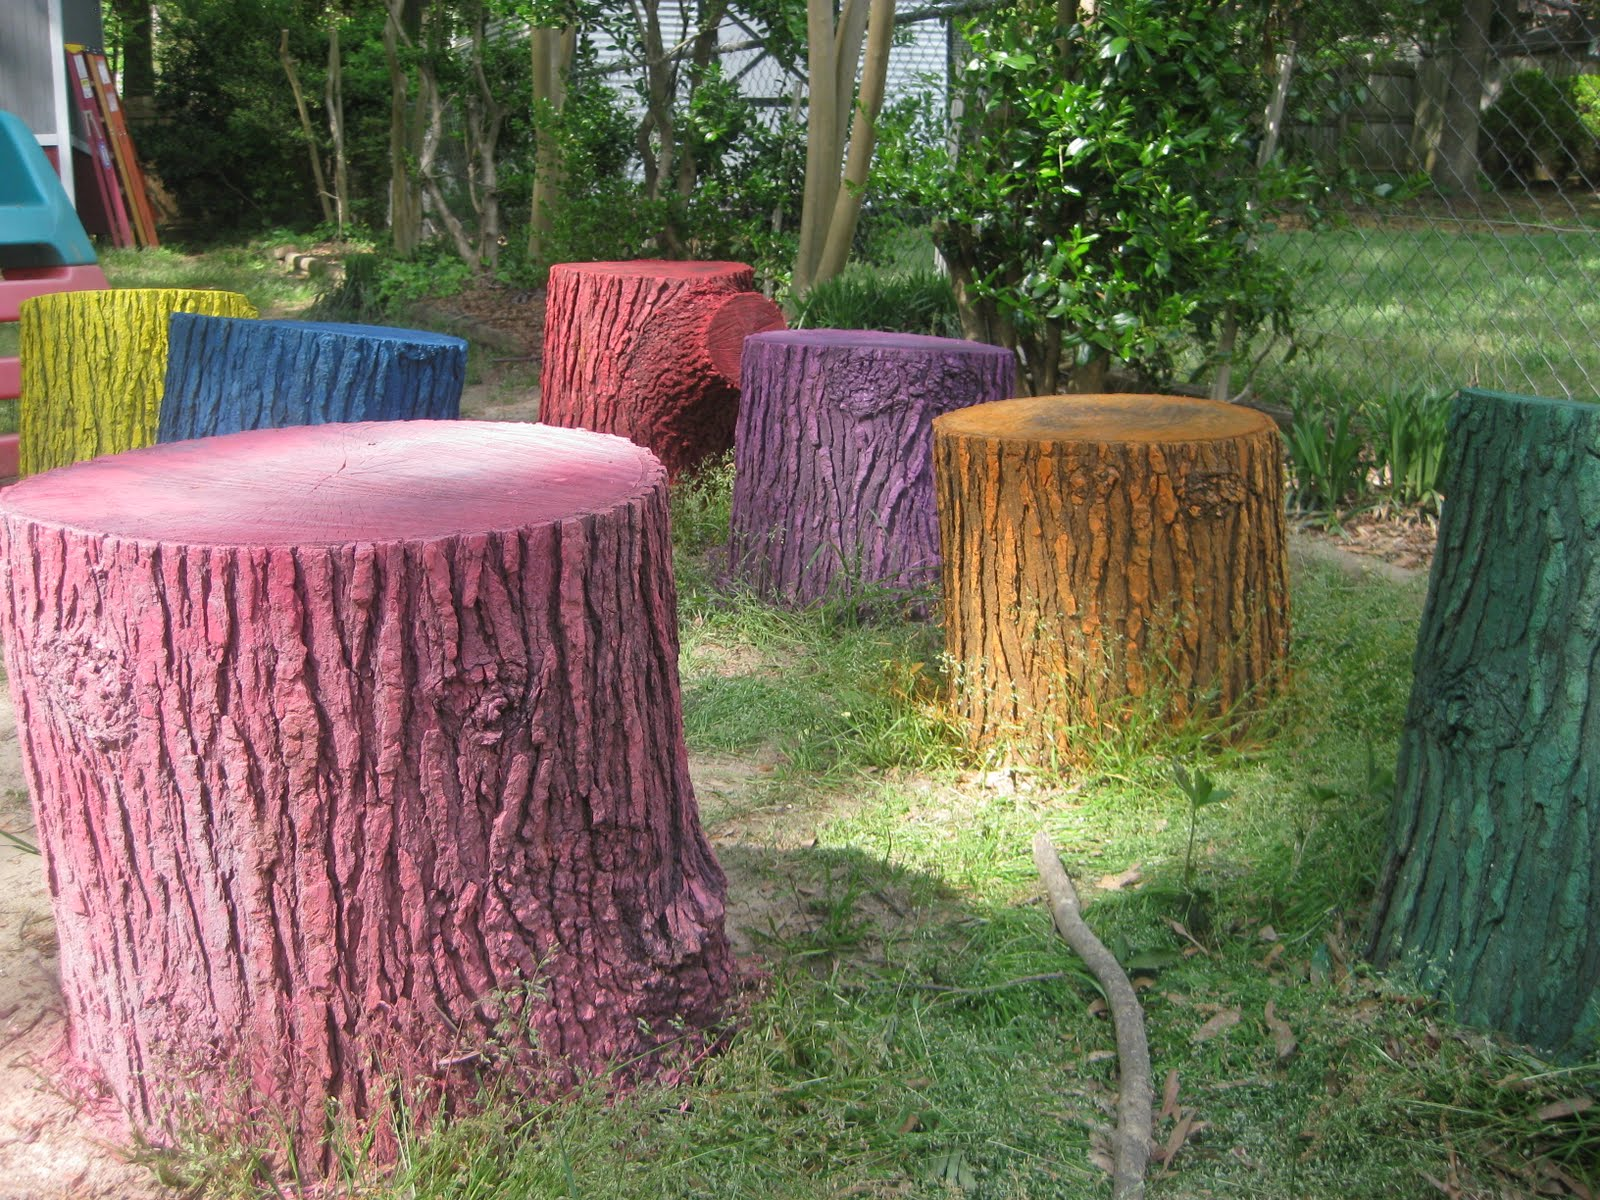 Living life well: 88. seal the tree chairs